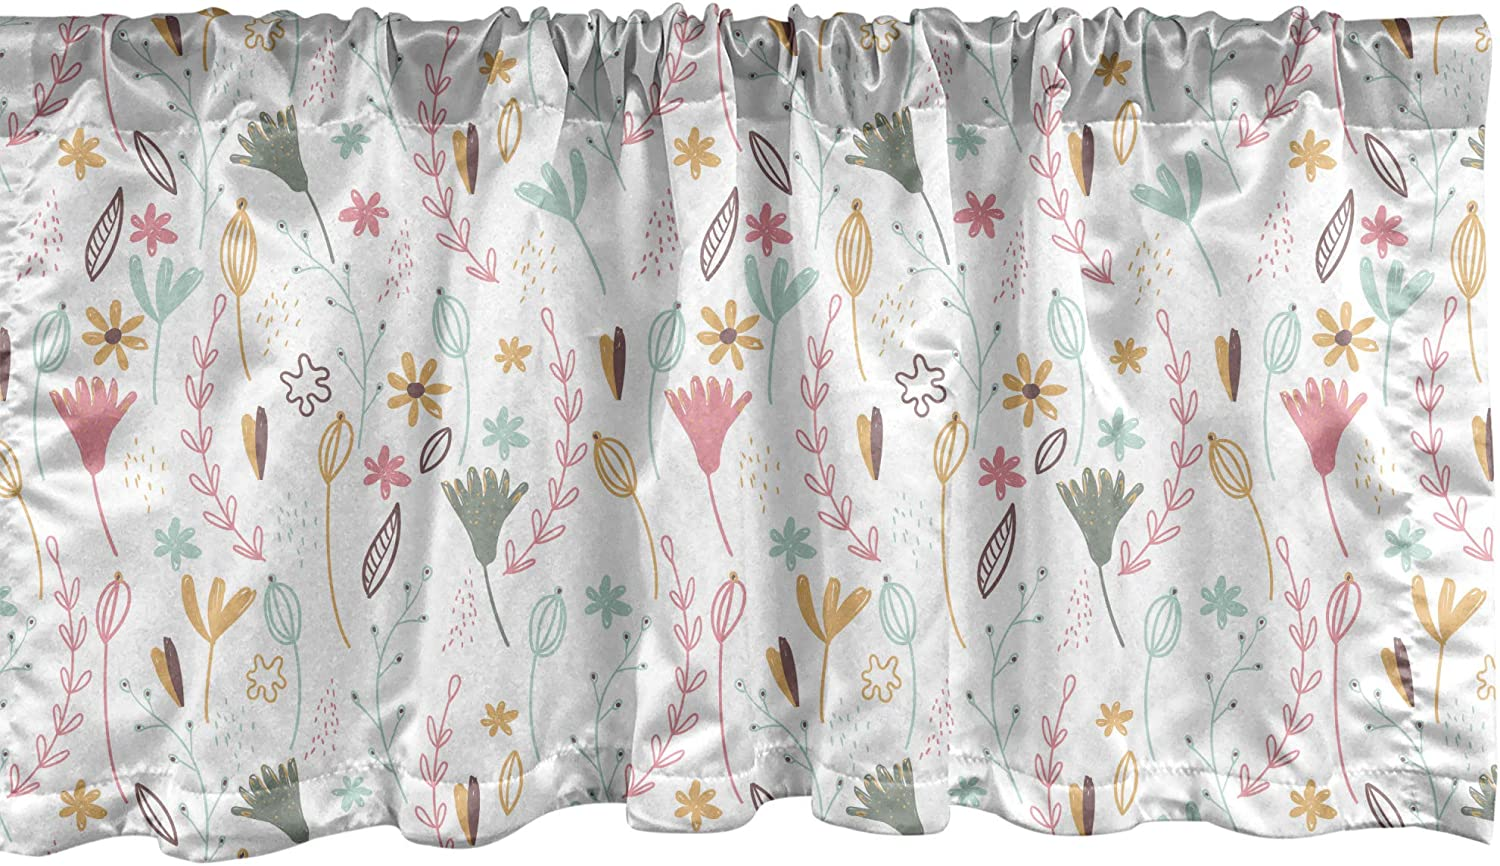 Ambesonne Botanical Window Valance, Pattern of Forest Herbs and Flowers, Curtain Valance for Kitchen Bedroom Decor with Rod Pocket, 54